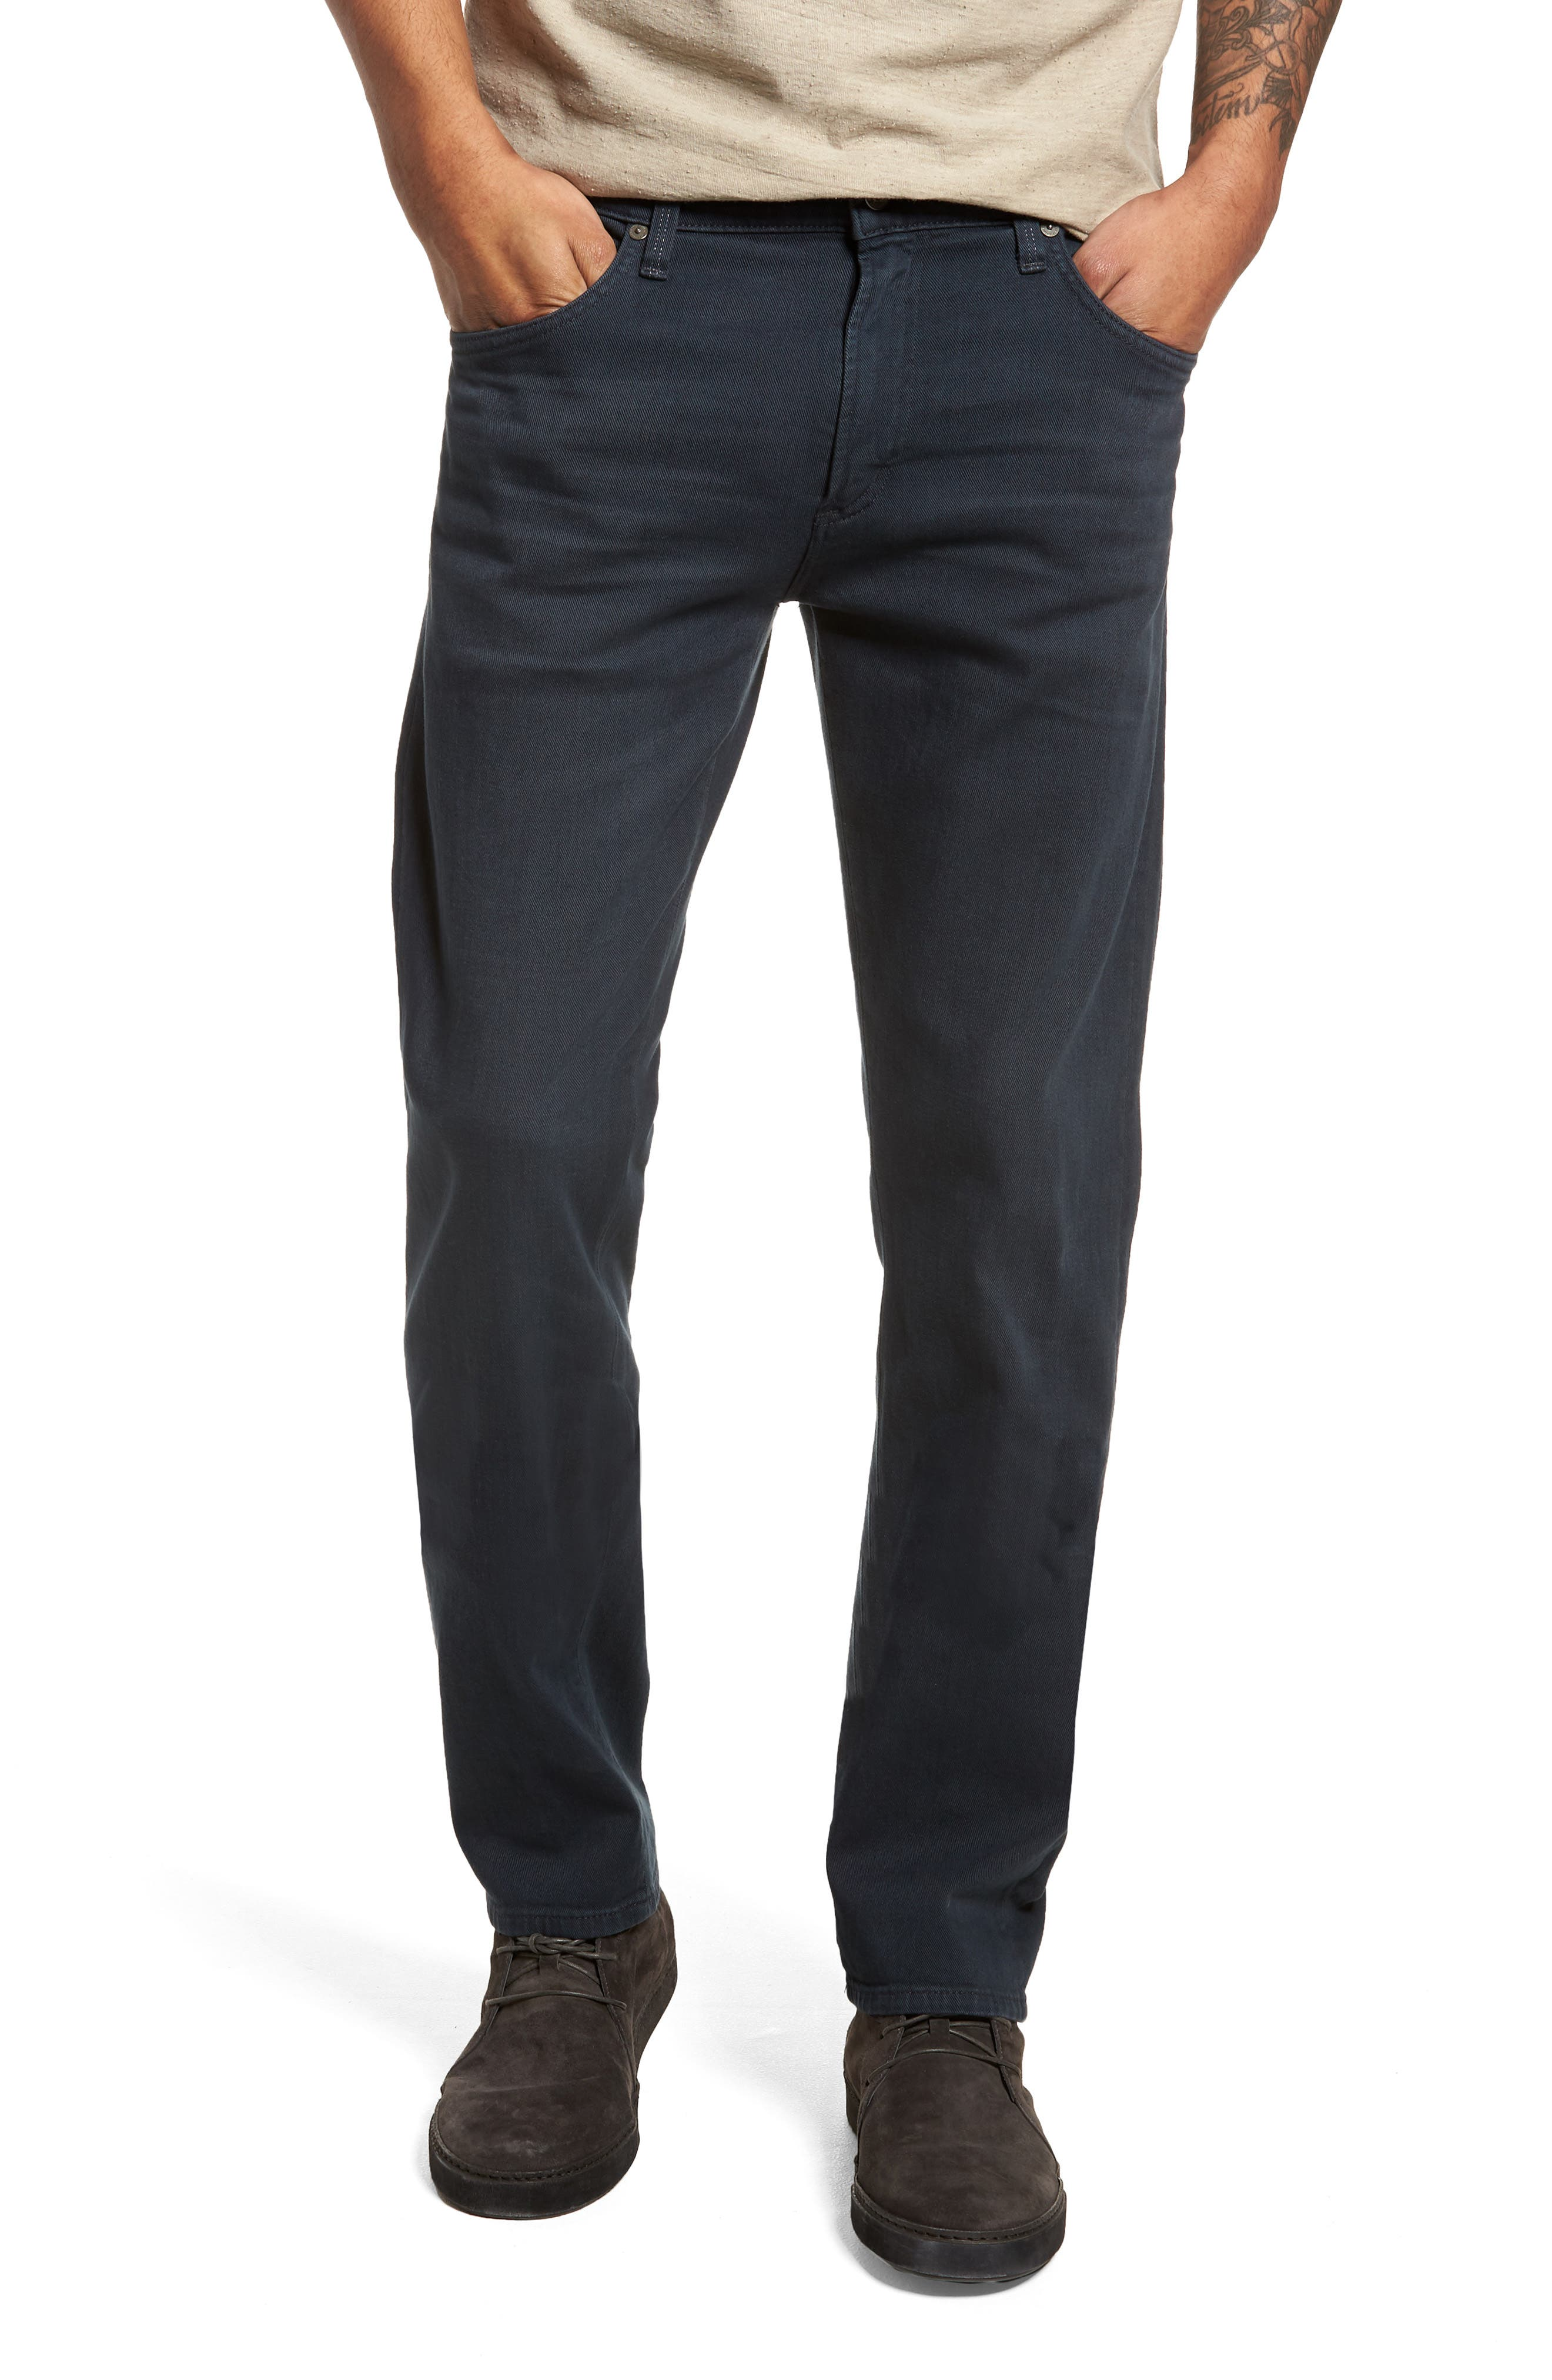 Core Slim Fit Jeans,                             Main thumbnail 1, color,                             Mecca